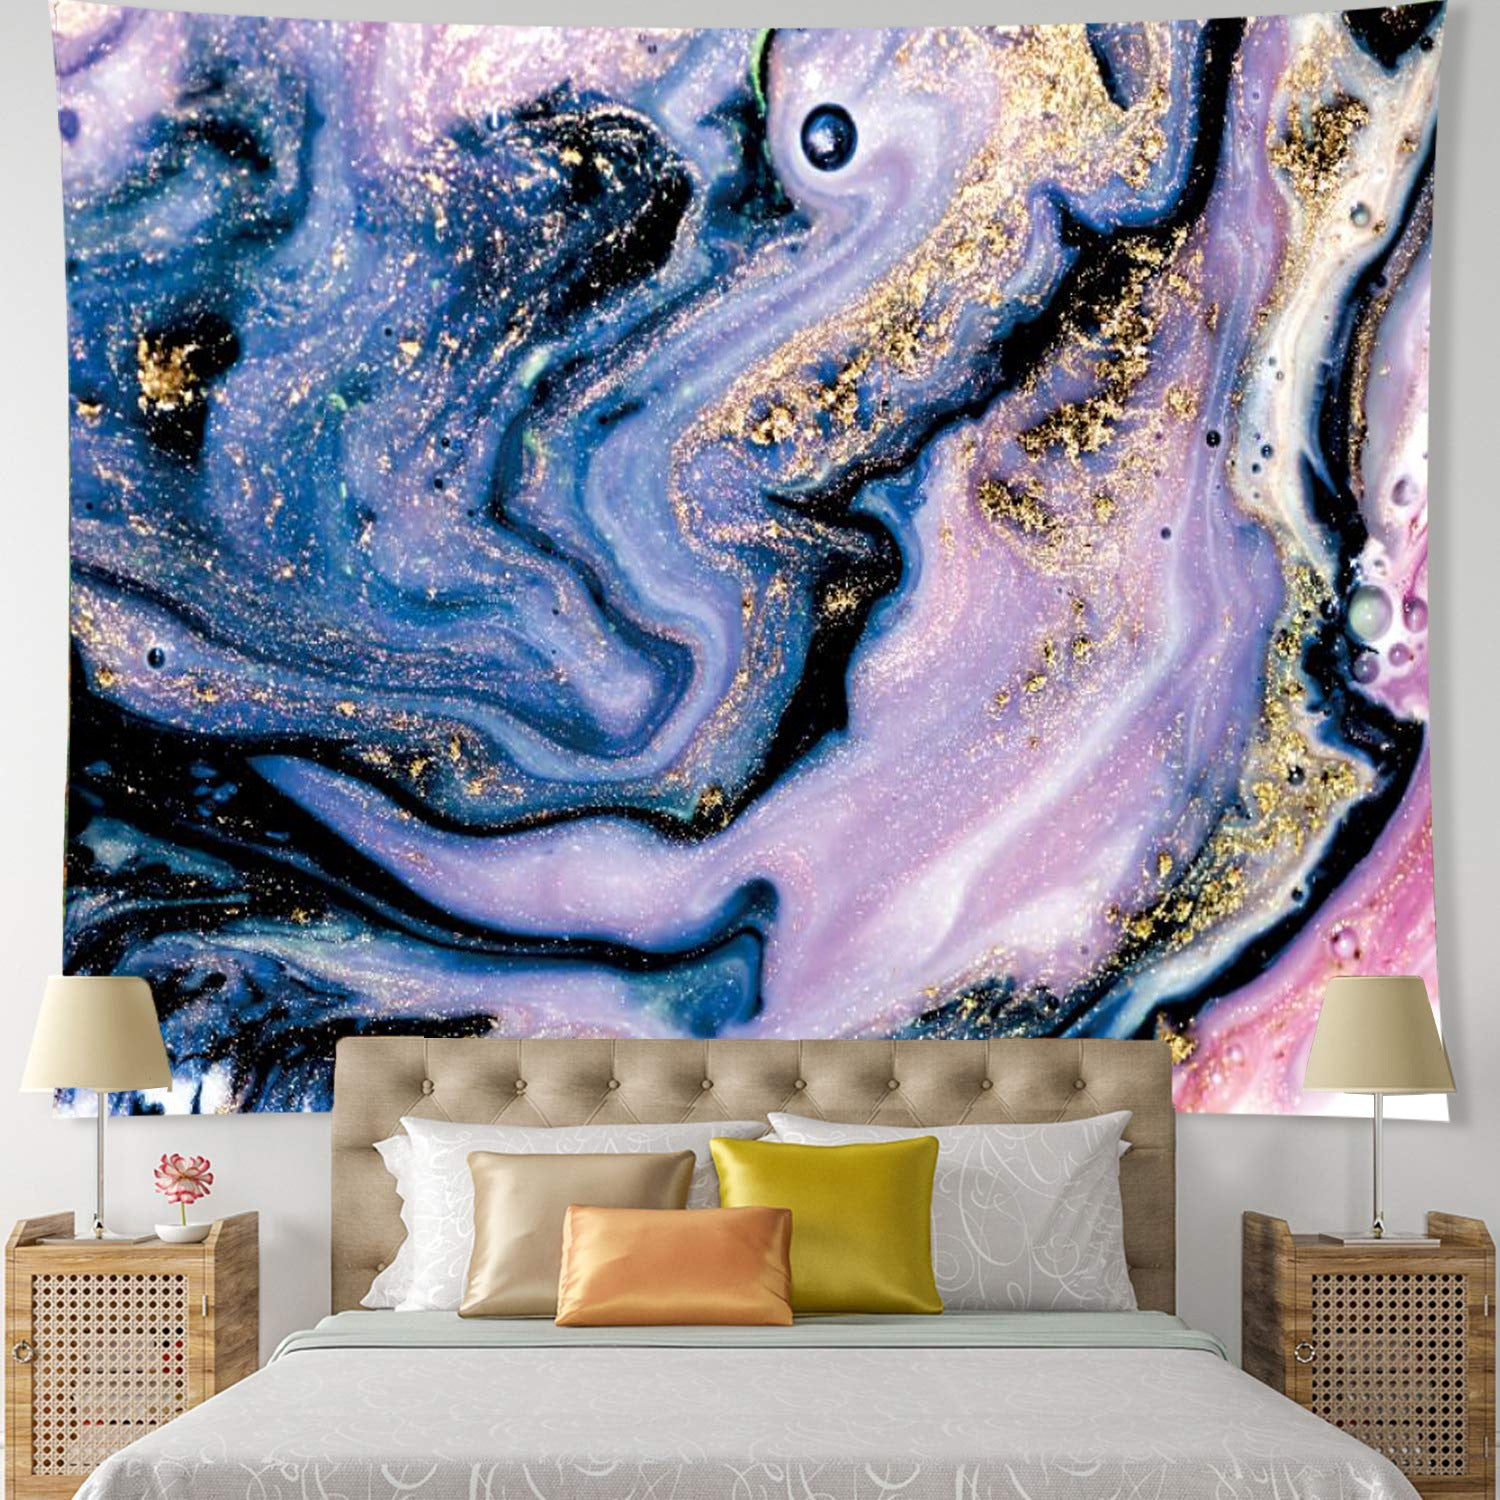 marble-wall-tapestry-01